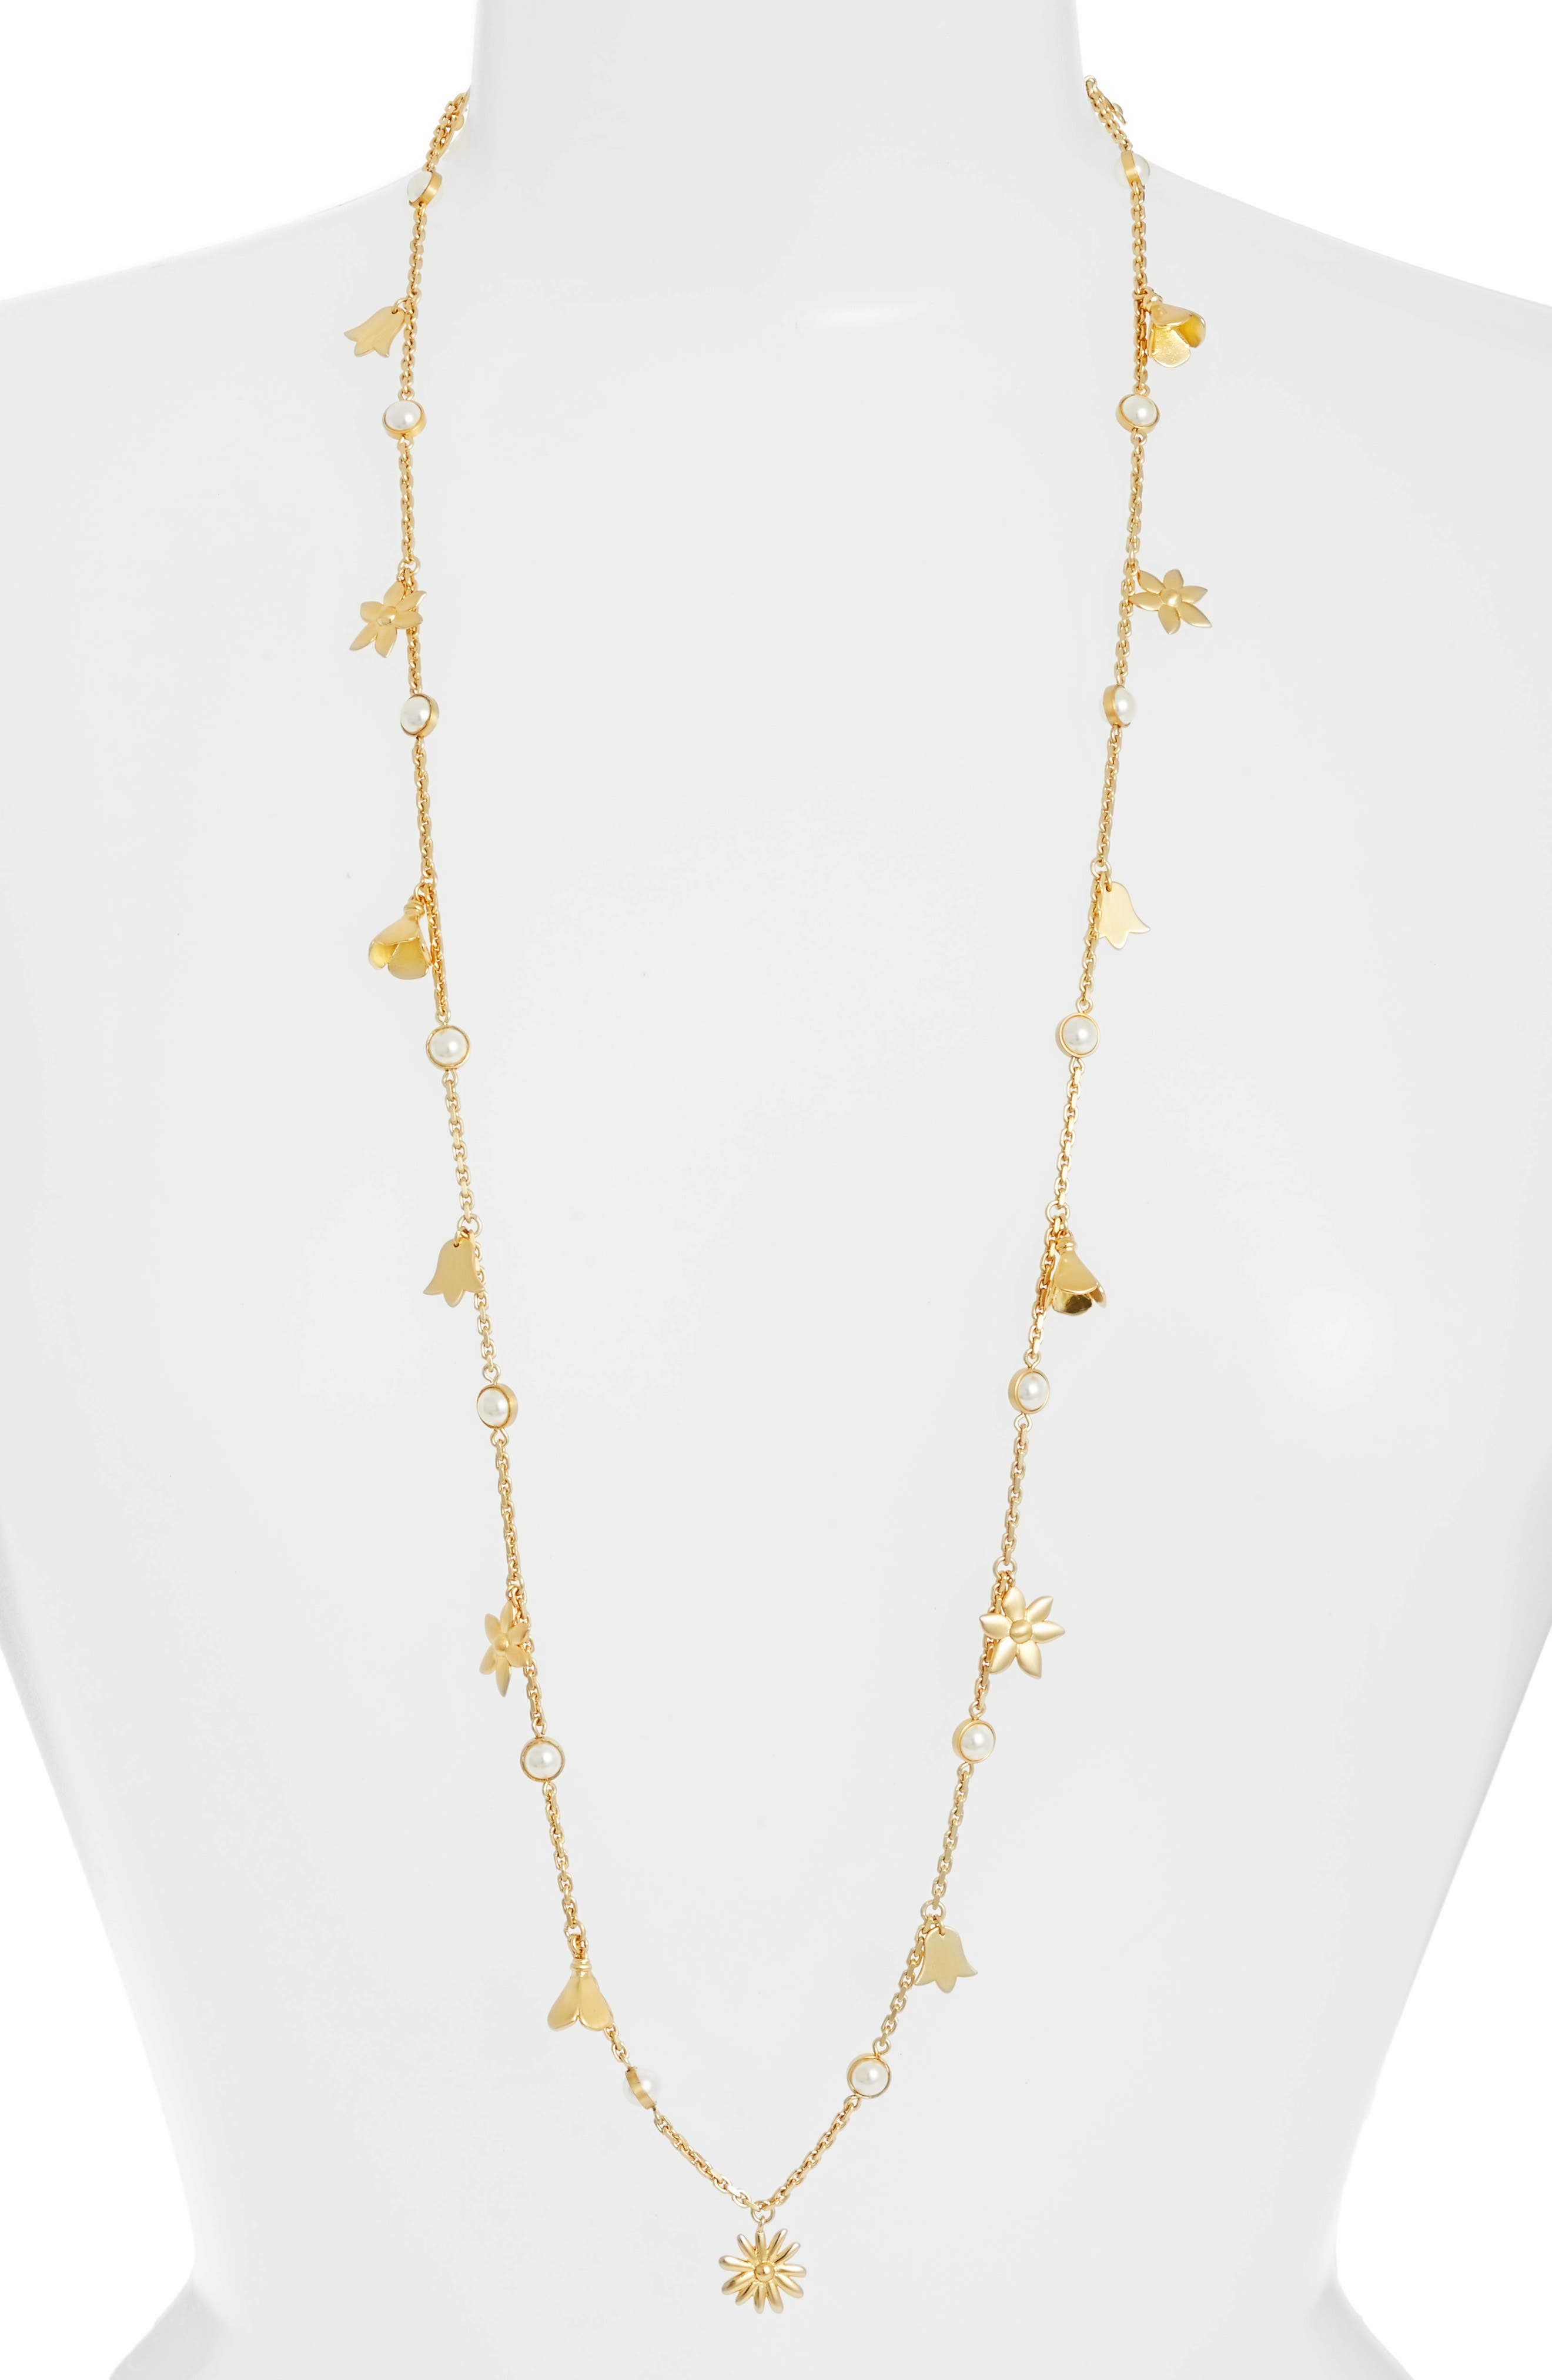 Bellflower Rosary Necklace,                         Main,                         color, Pearl/ Brass